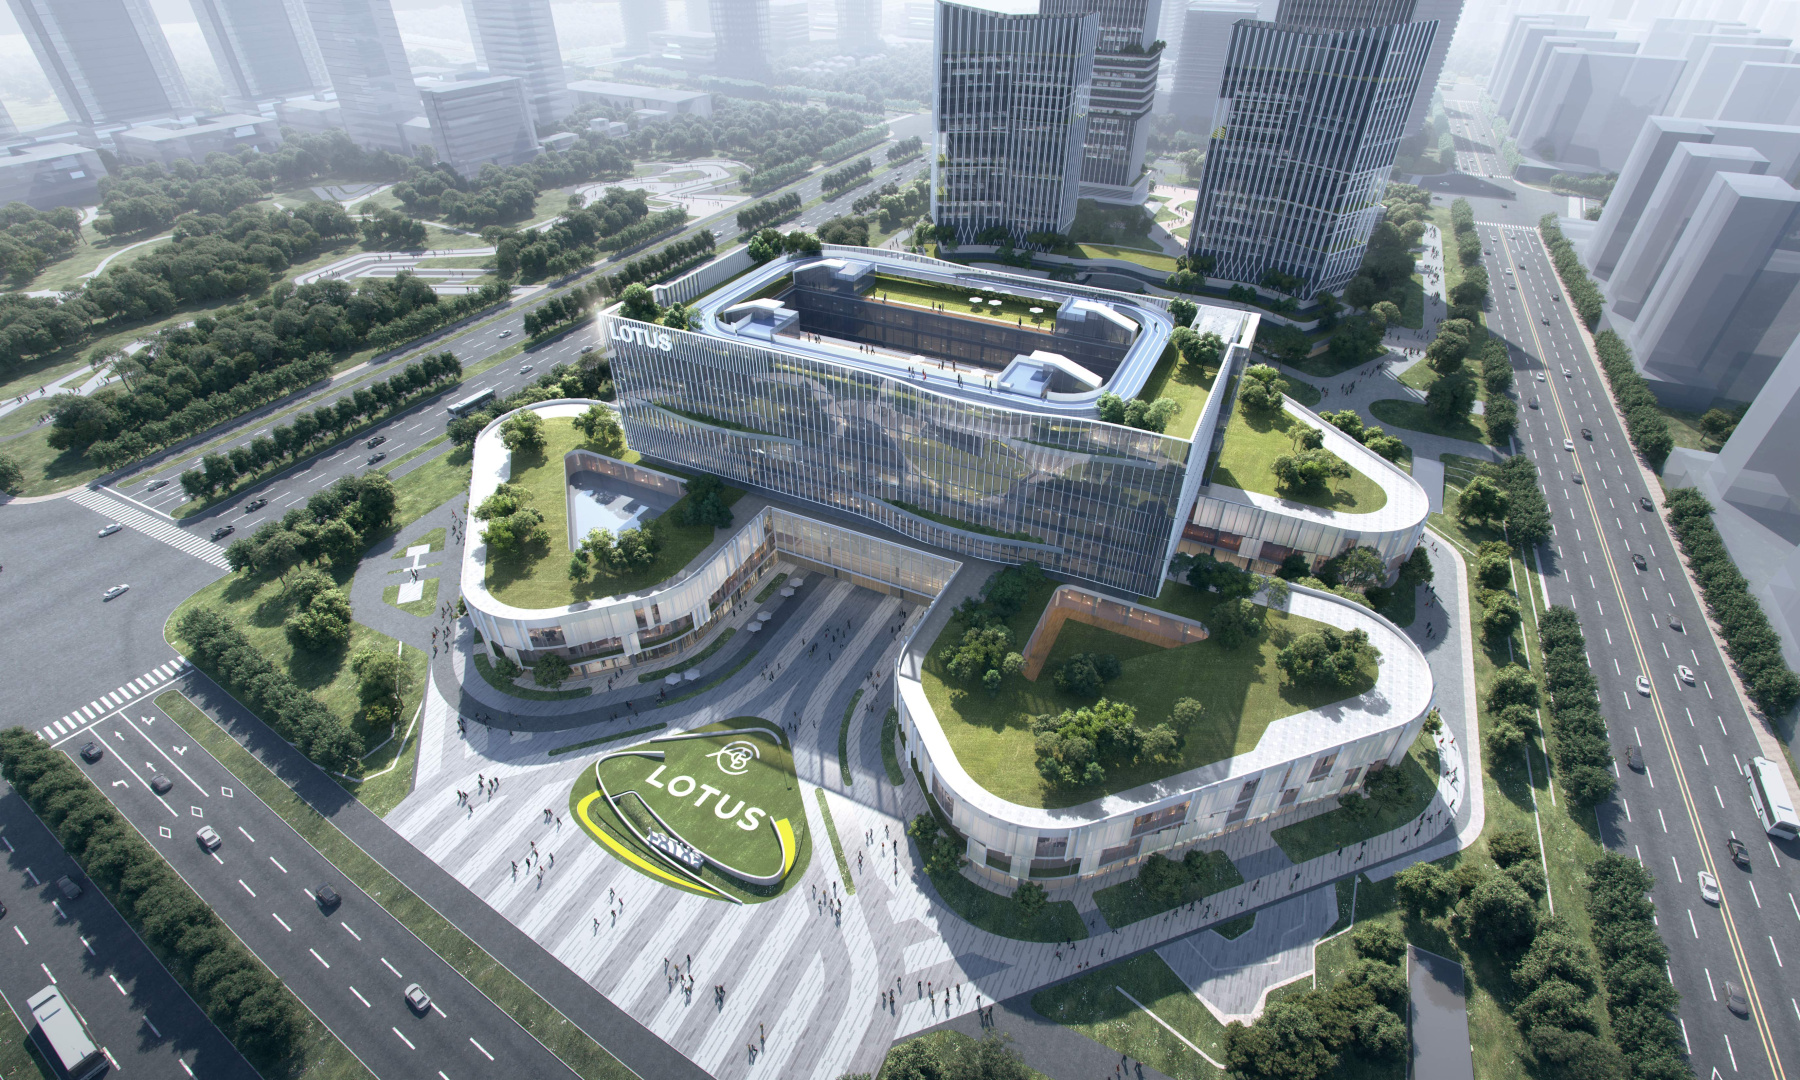 SMALL_Lotus-Technology-HQ-architectural-image